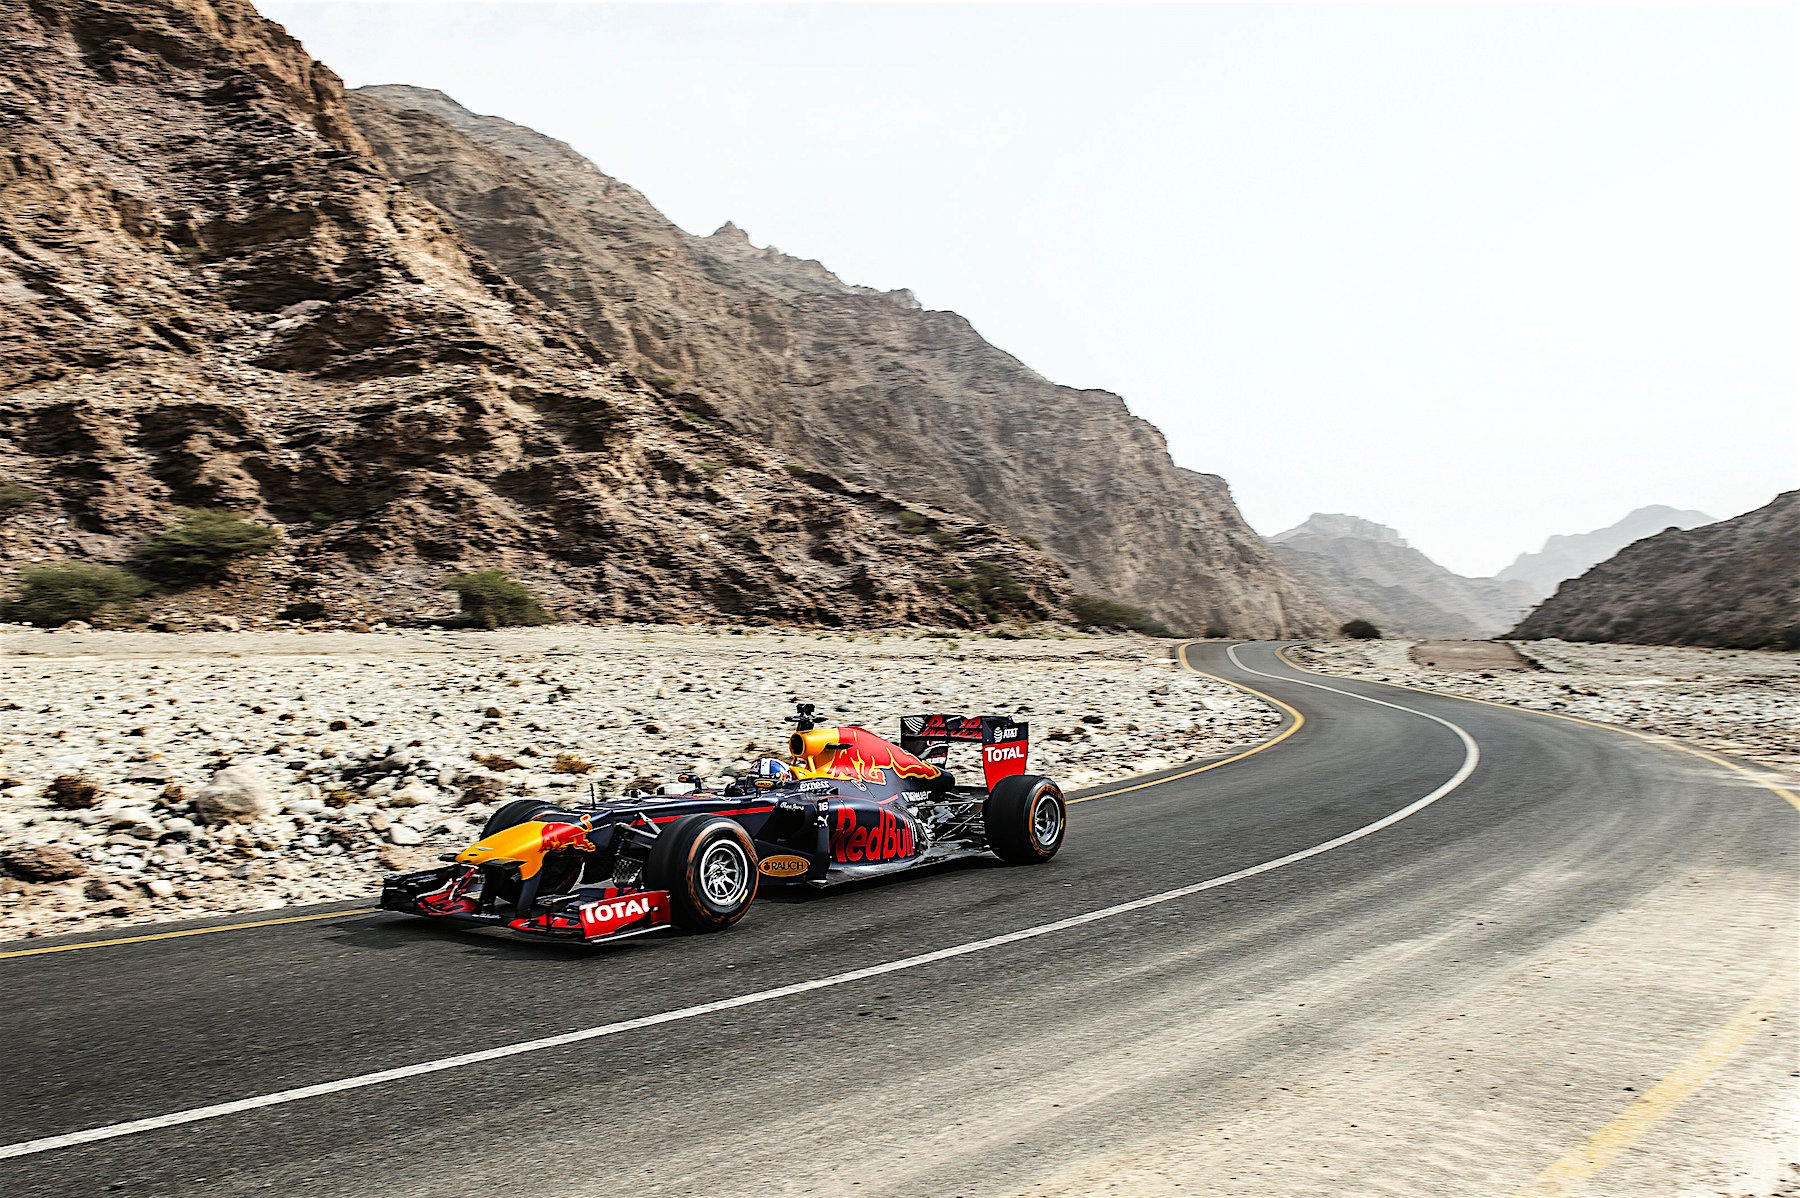 DC and the RB7 in Oman